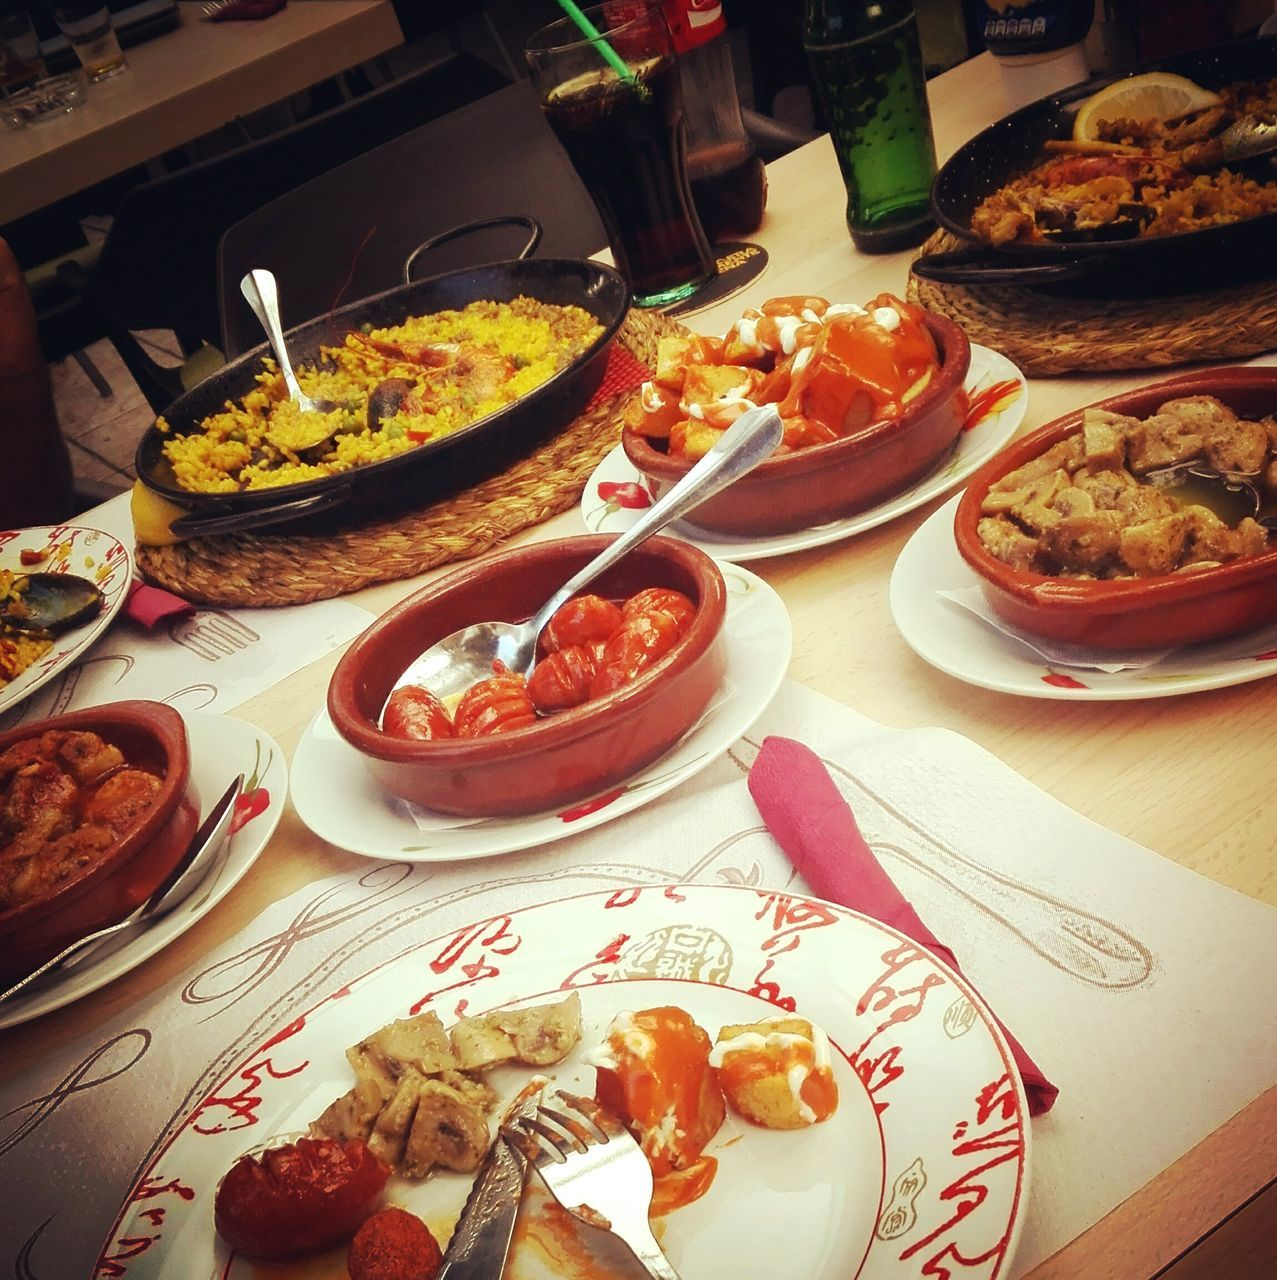 plate, food, food and drink, ready-to-eat, table, indoors, meat, serving size, freshness, sausage, indulgence, meal, healthy eating, no people, appetizer, close-up, day